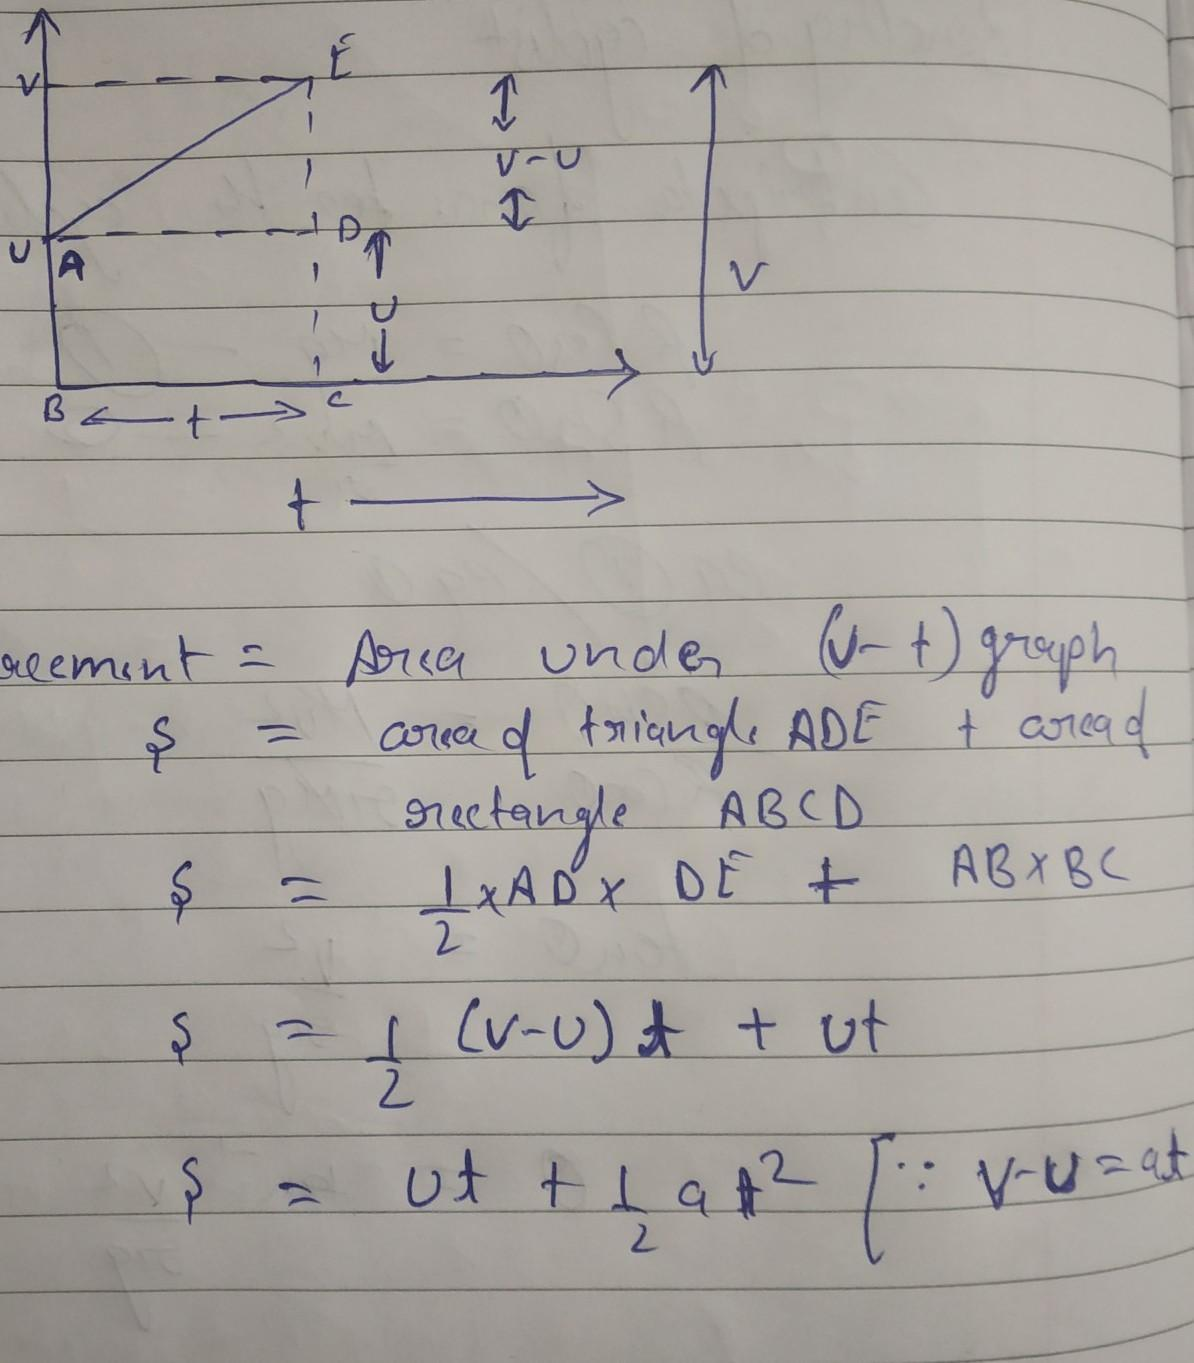 Draw Velocity Time Graph Of Uniform Motion And Prove That